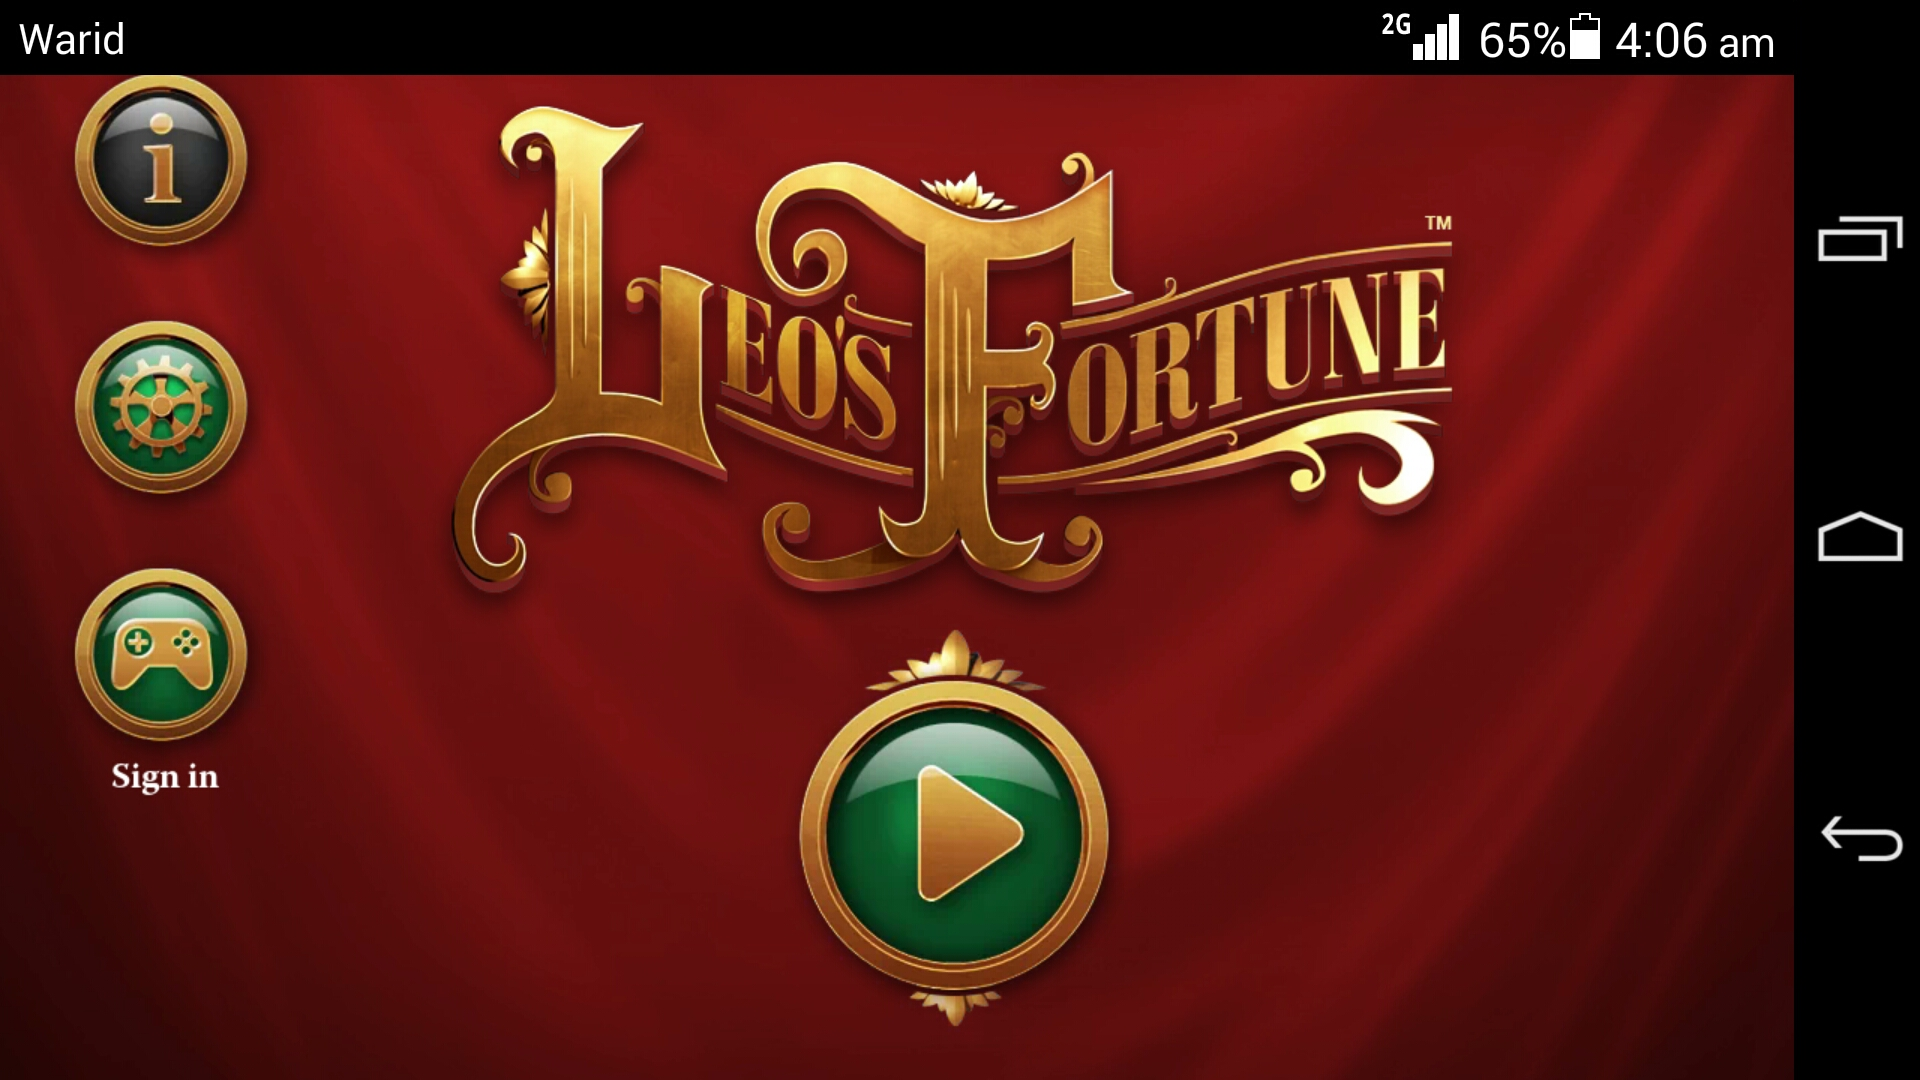 Leo's Fortune Adventure Game Review